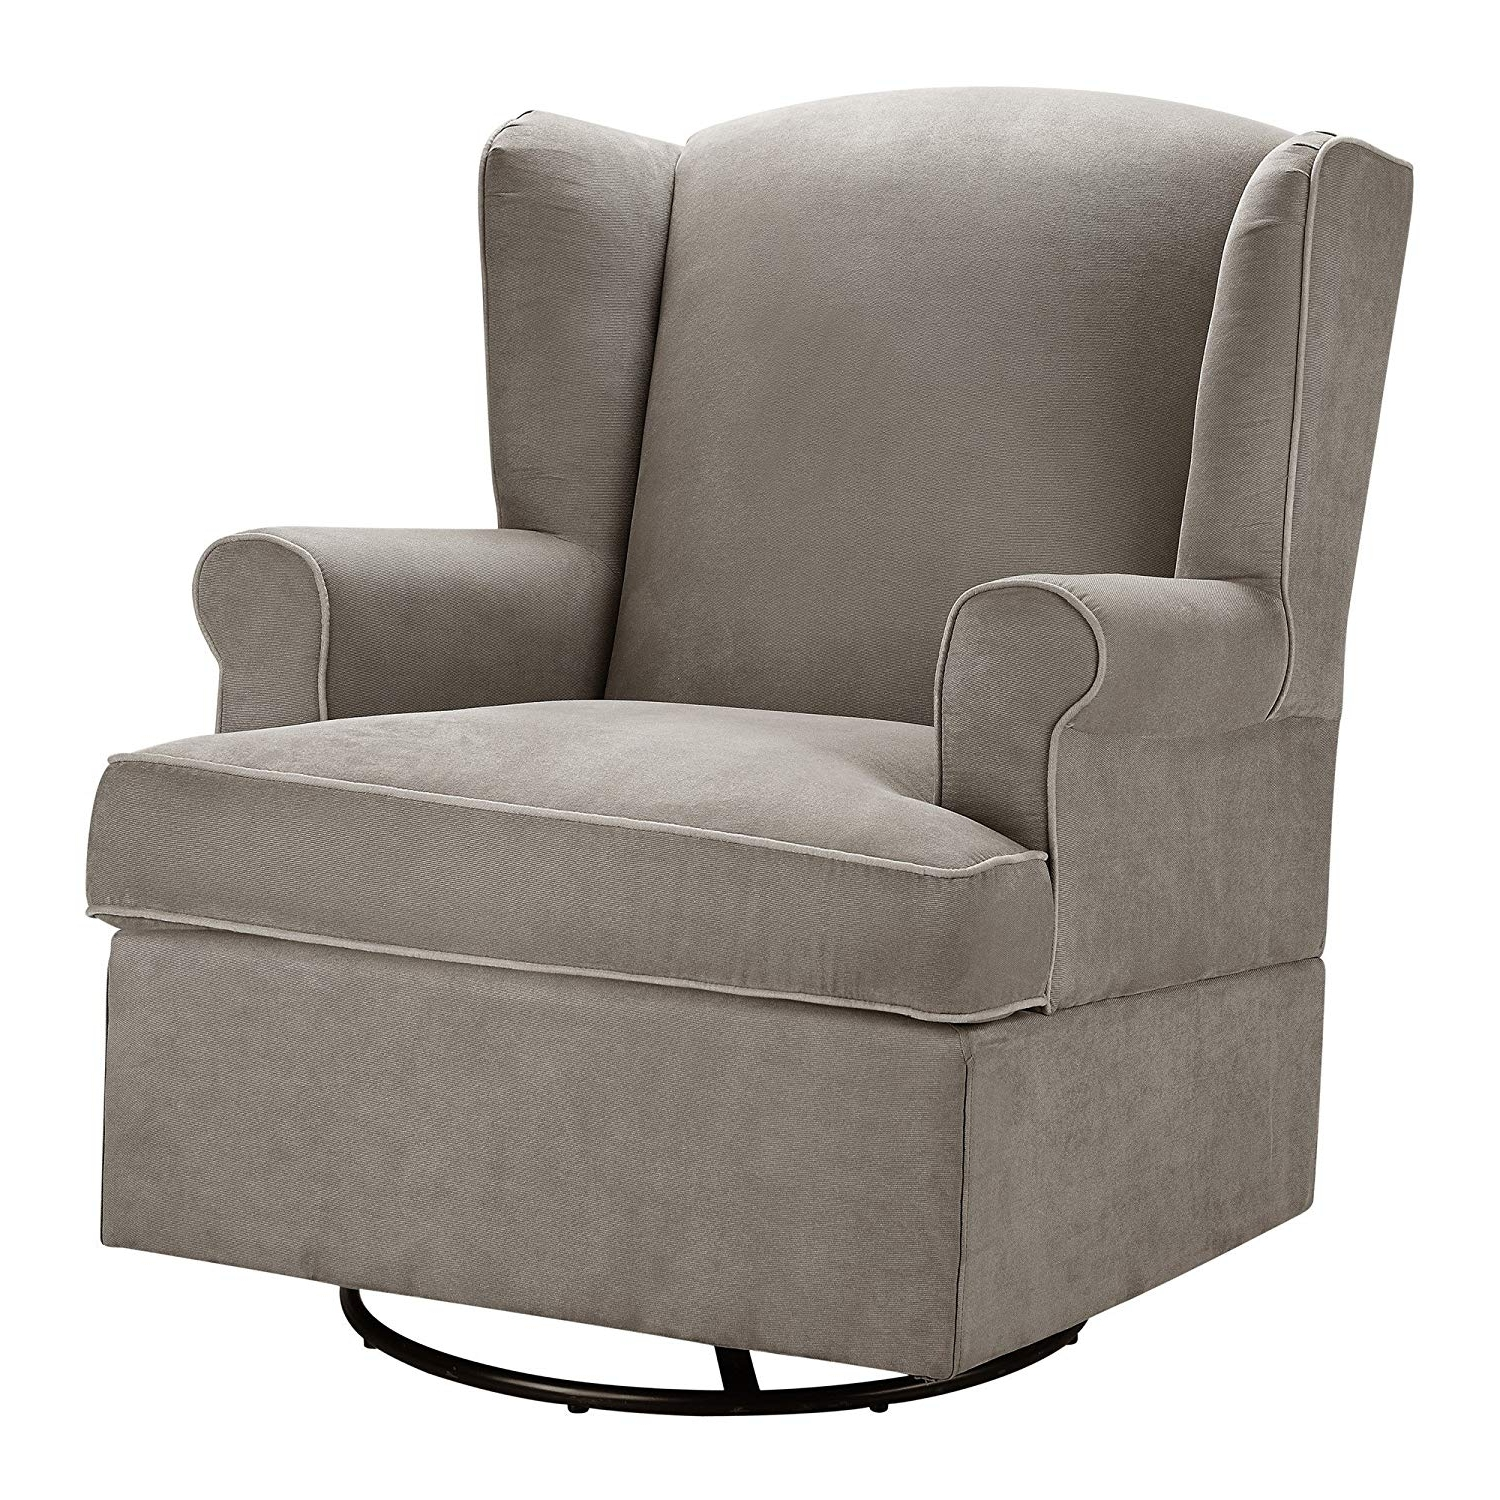 Amazon: Baby Relax Swivel Glider, Dark Taupe: Baby For Current Swivel Rocking Chairs (View 4 of 15)